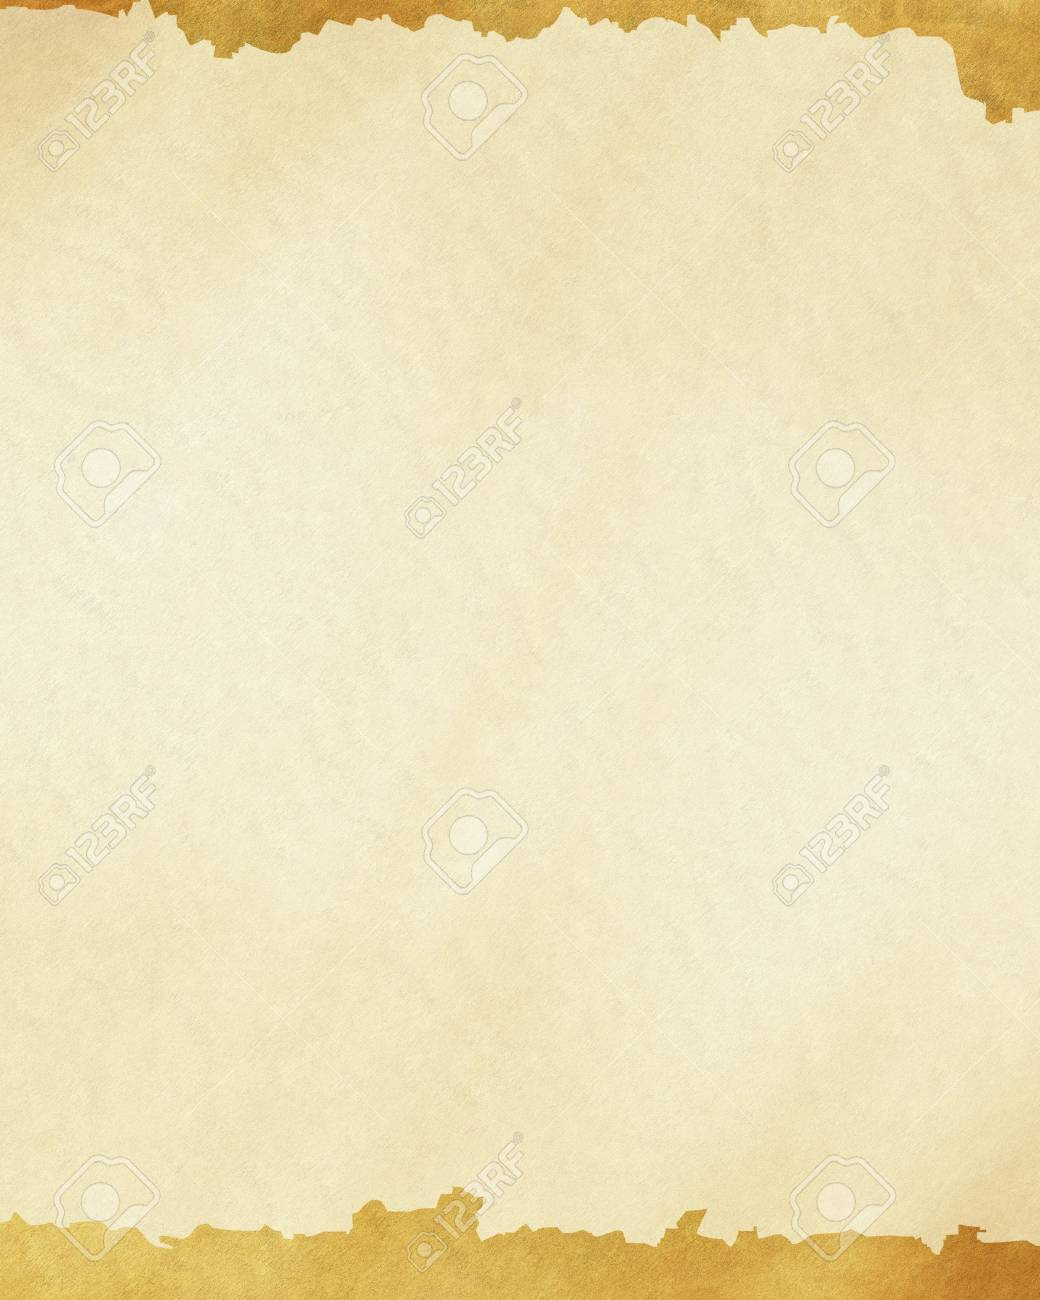 Old paper texture with spots, stains and soft folds Stock Photo - 14776412